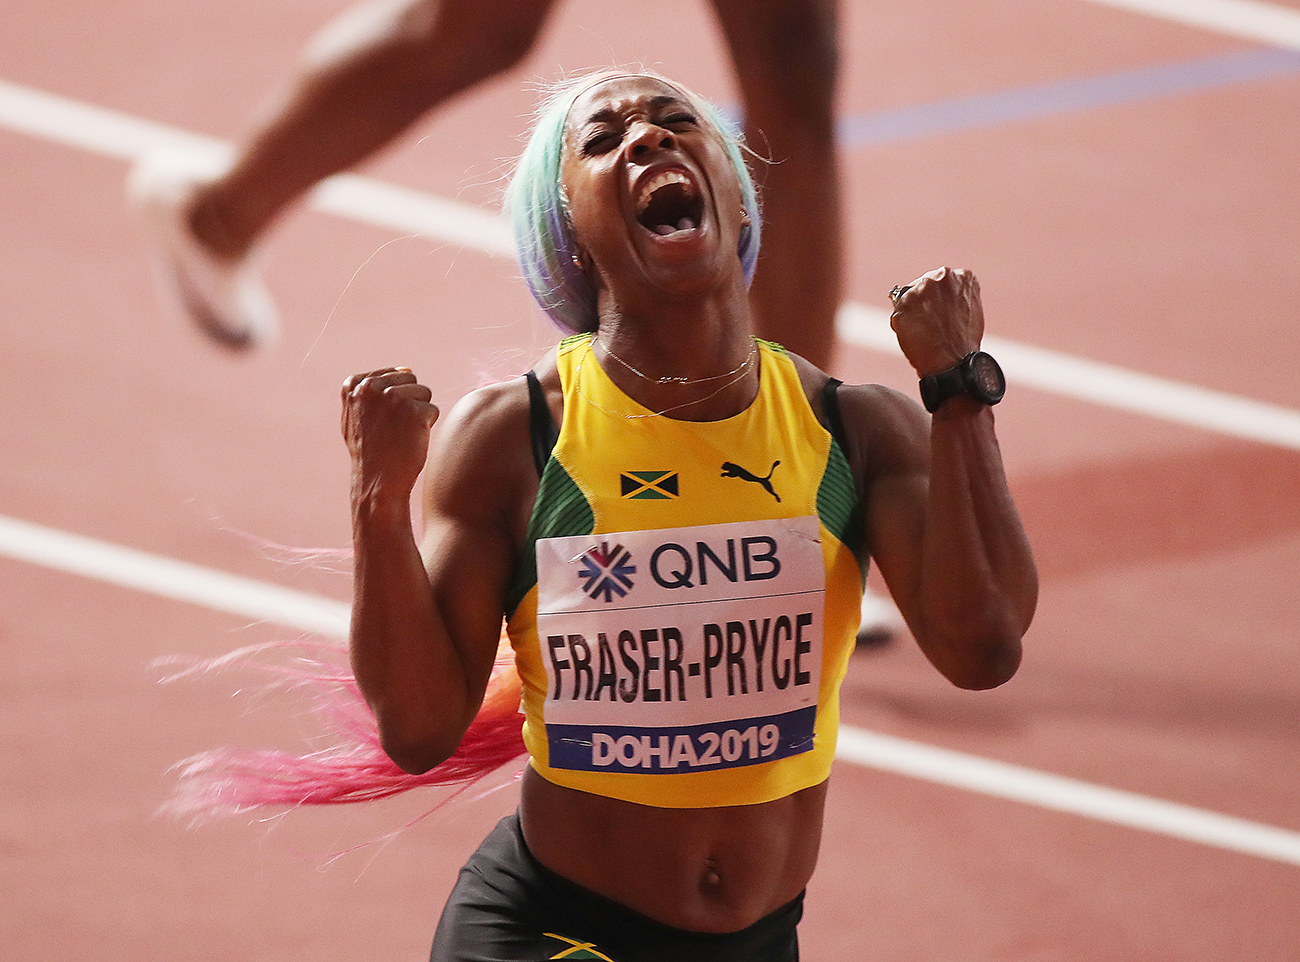 Shelly-Ann Fraser-Pryce, Asher-Smith, 2019 World Championship, wire, track and field